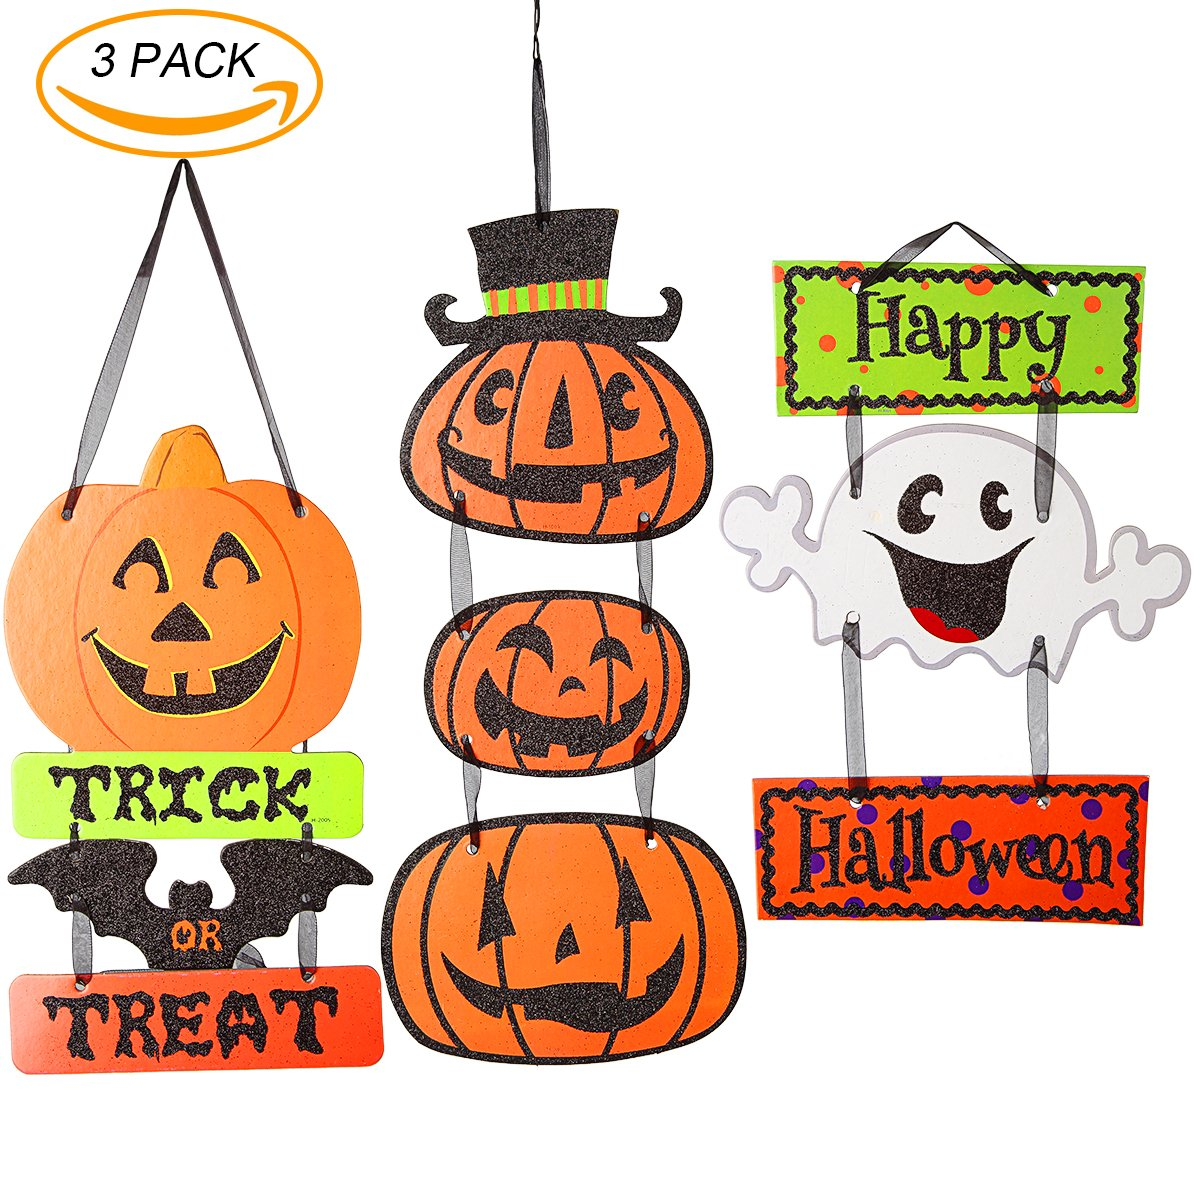 Halloween Trick or Treat Hanging Sign Decoration Happy Halloween Sign Door and Wall Signs,for Home,School,Outdoor,Halloween Party Decorations